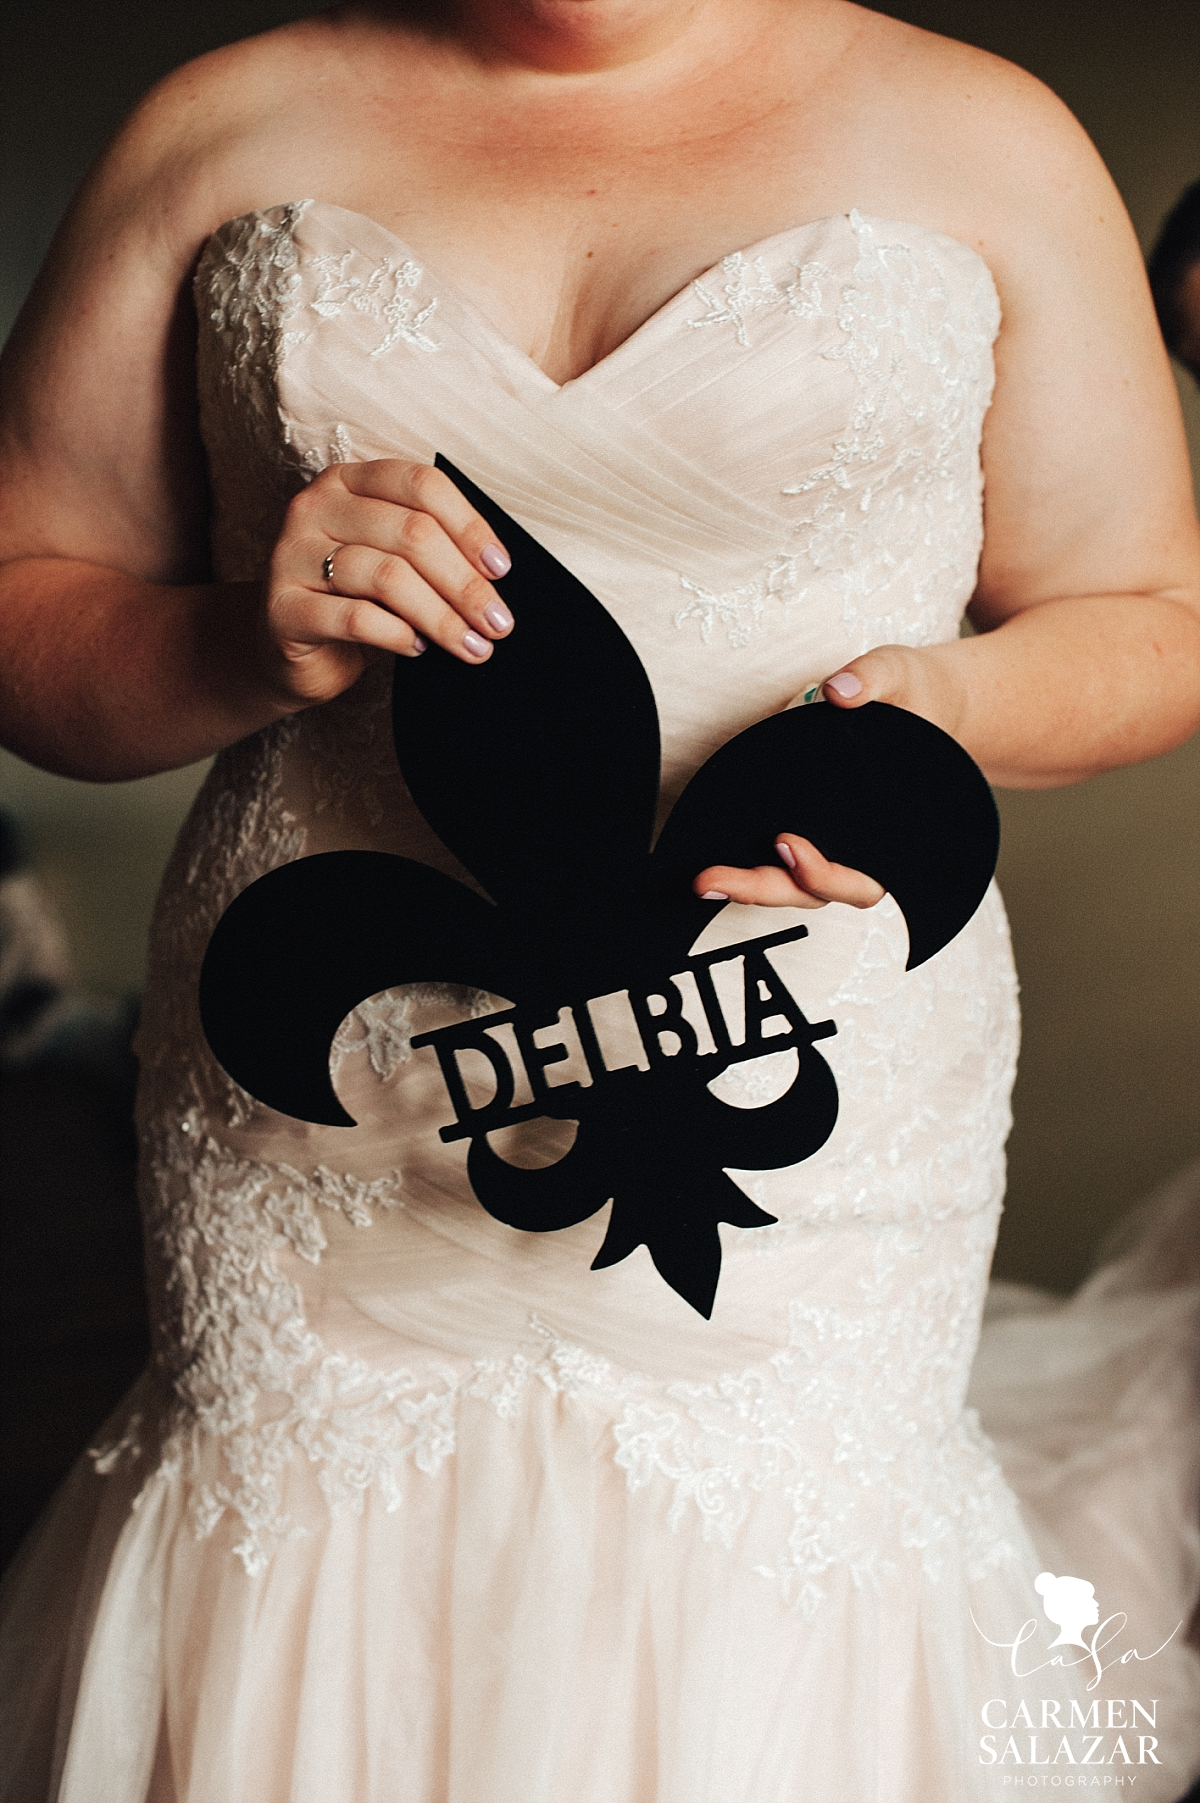 Personalized fleur de lis wedding gift - Carmen Salazar